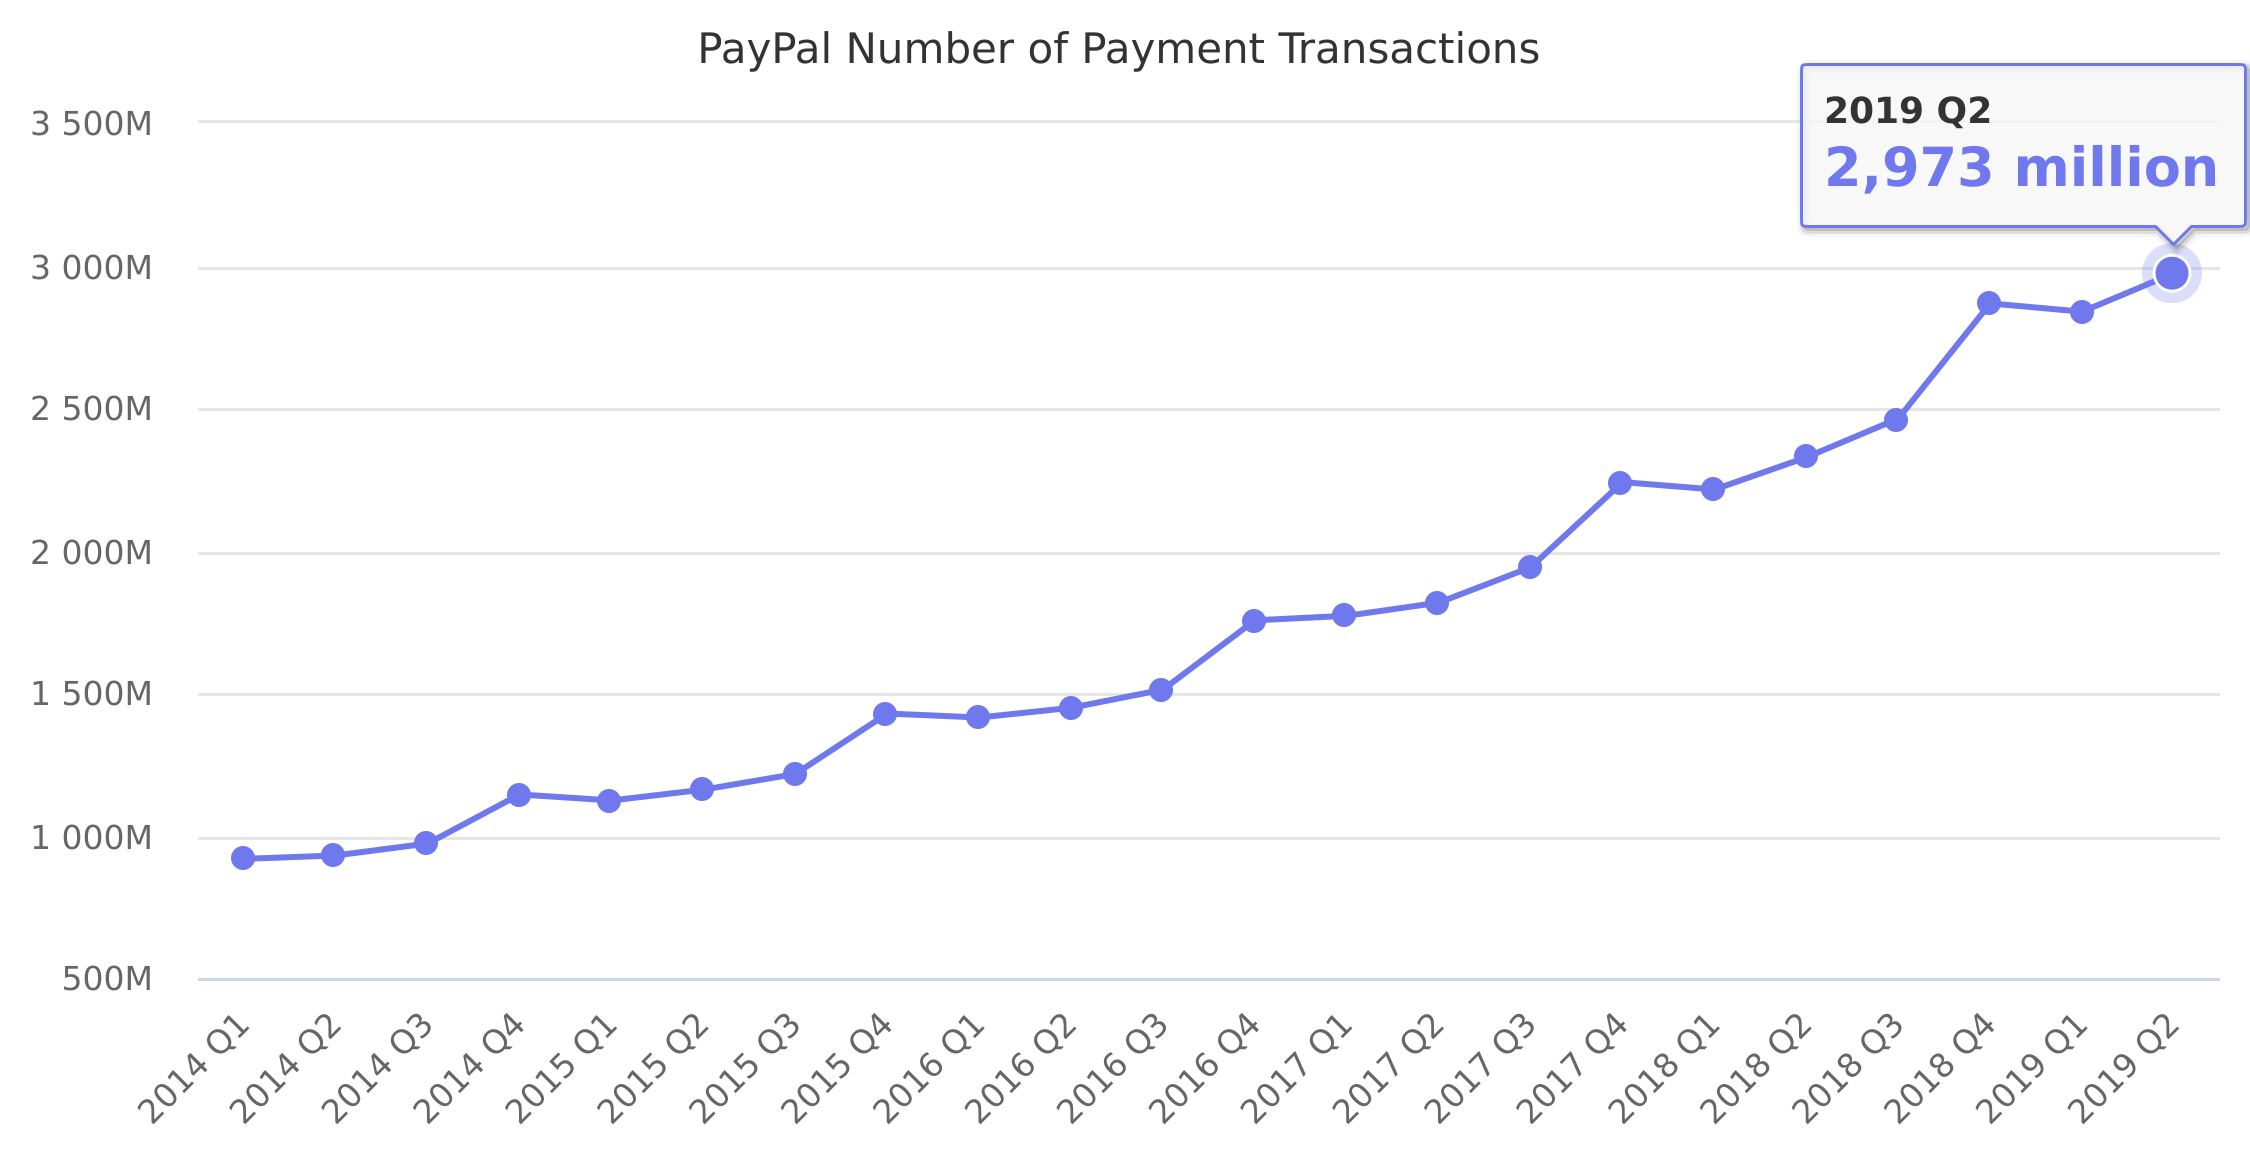 PayPal Number of Payment Transactions 2014-2018